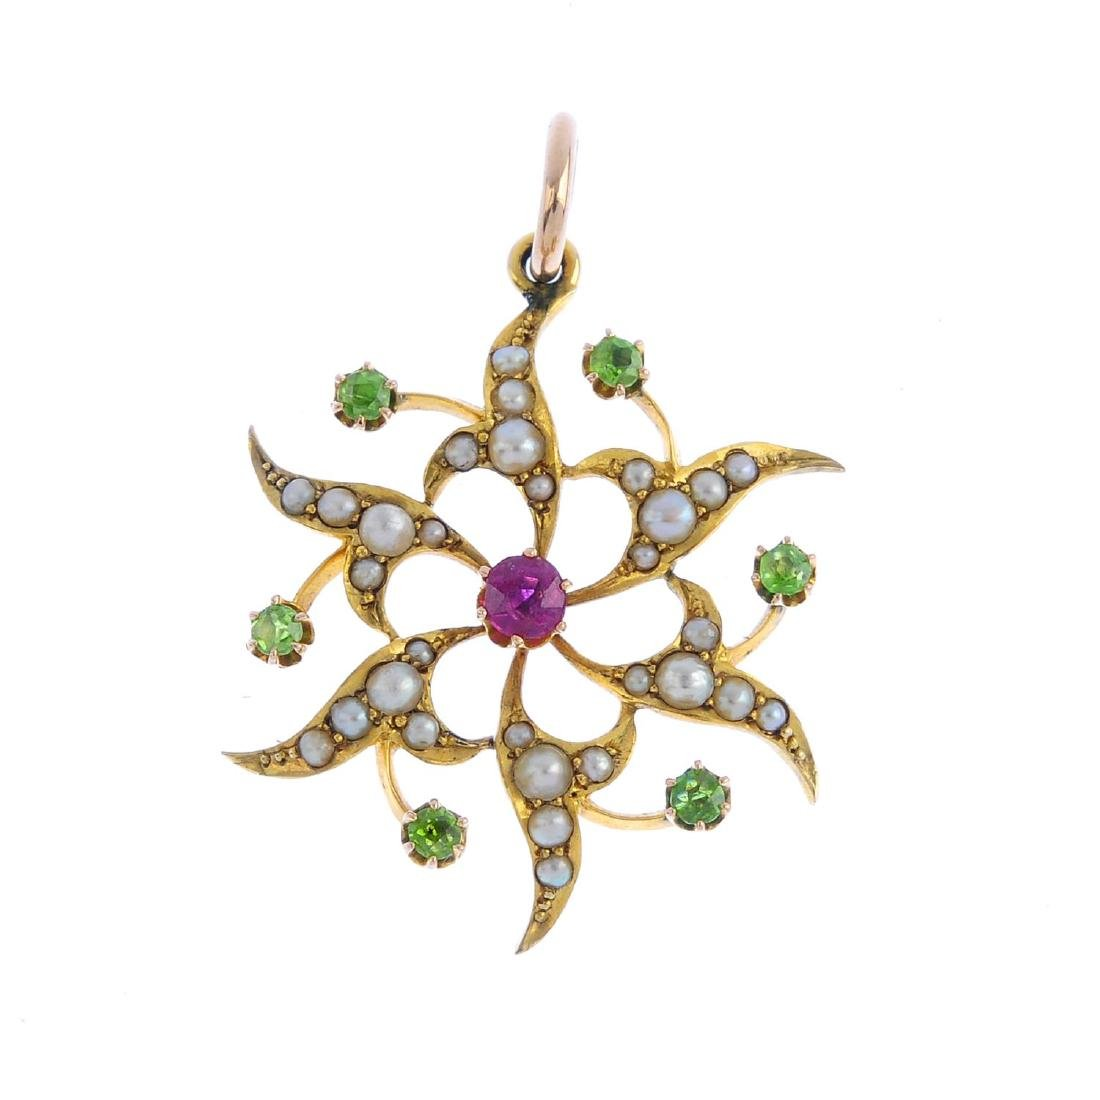 An early 20th century gold ruby, demantoid garnet and